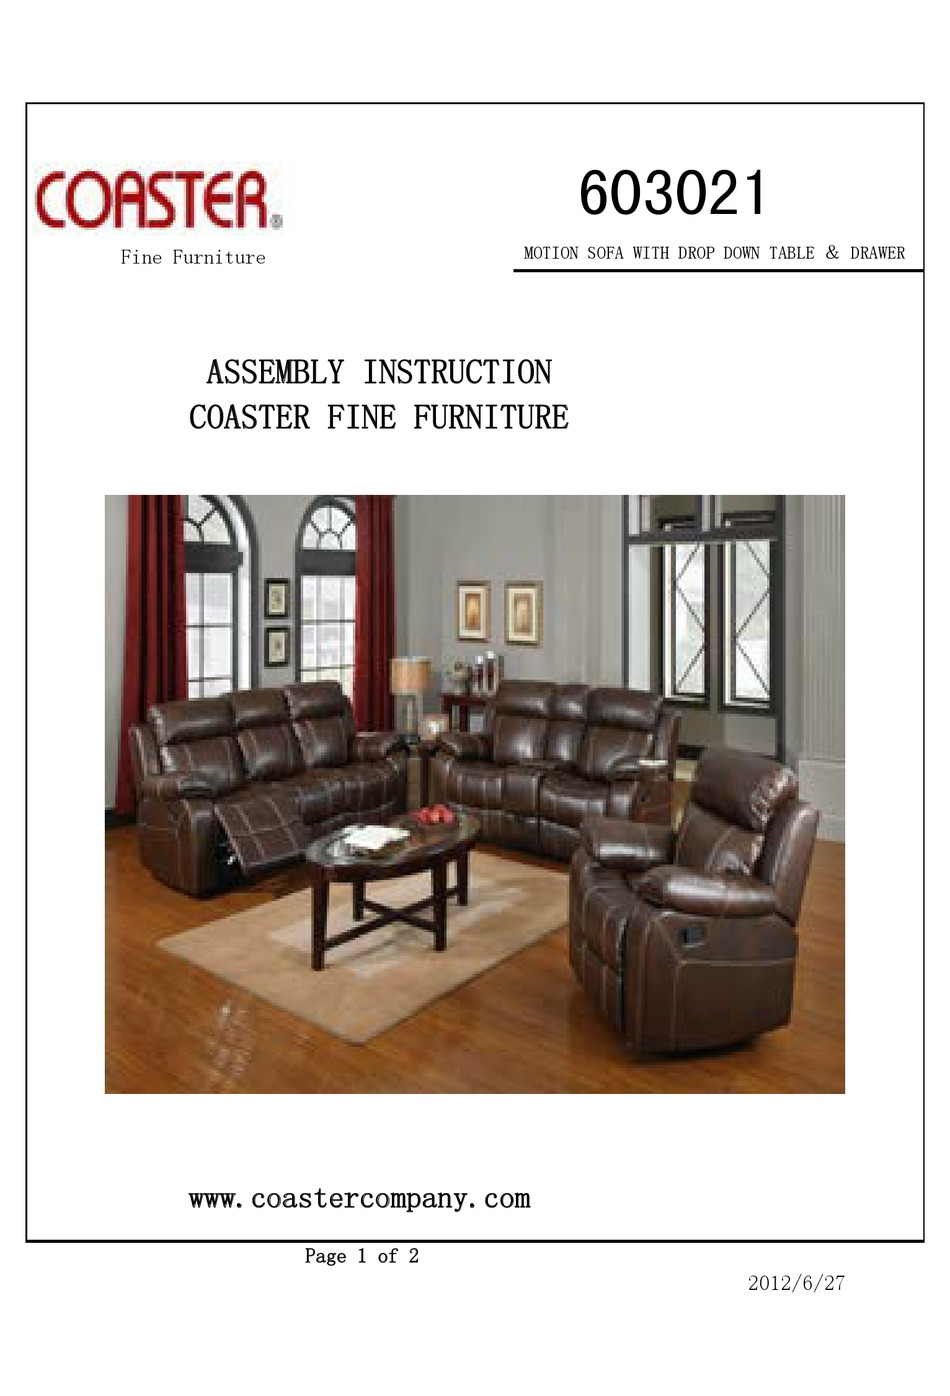 Coaster Company Furniture Assembly Instructions